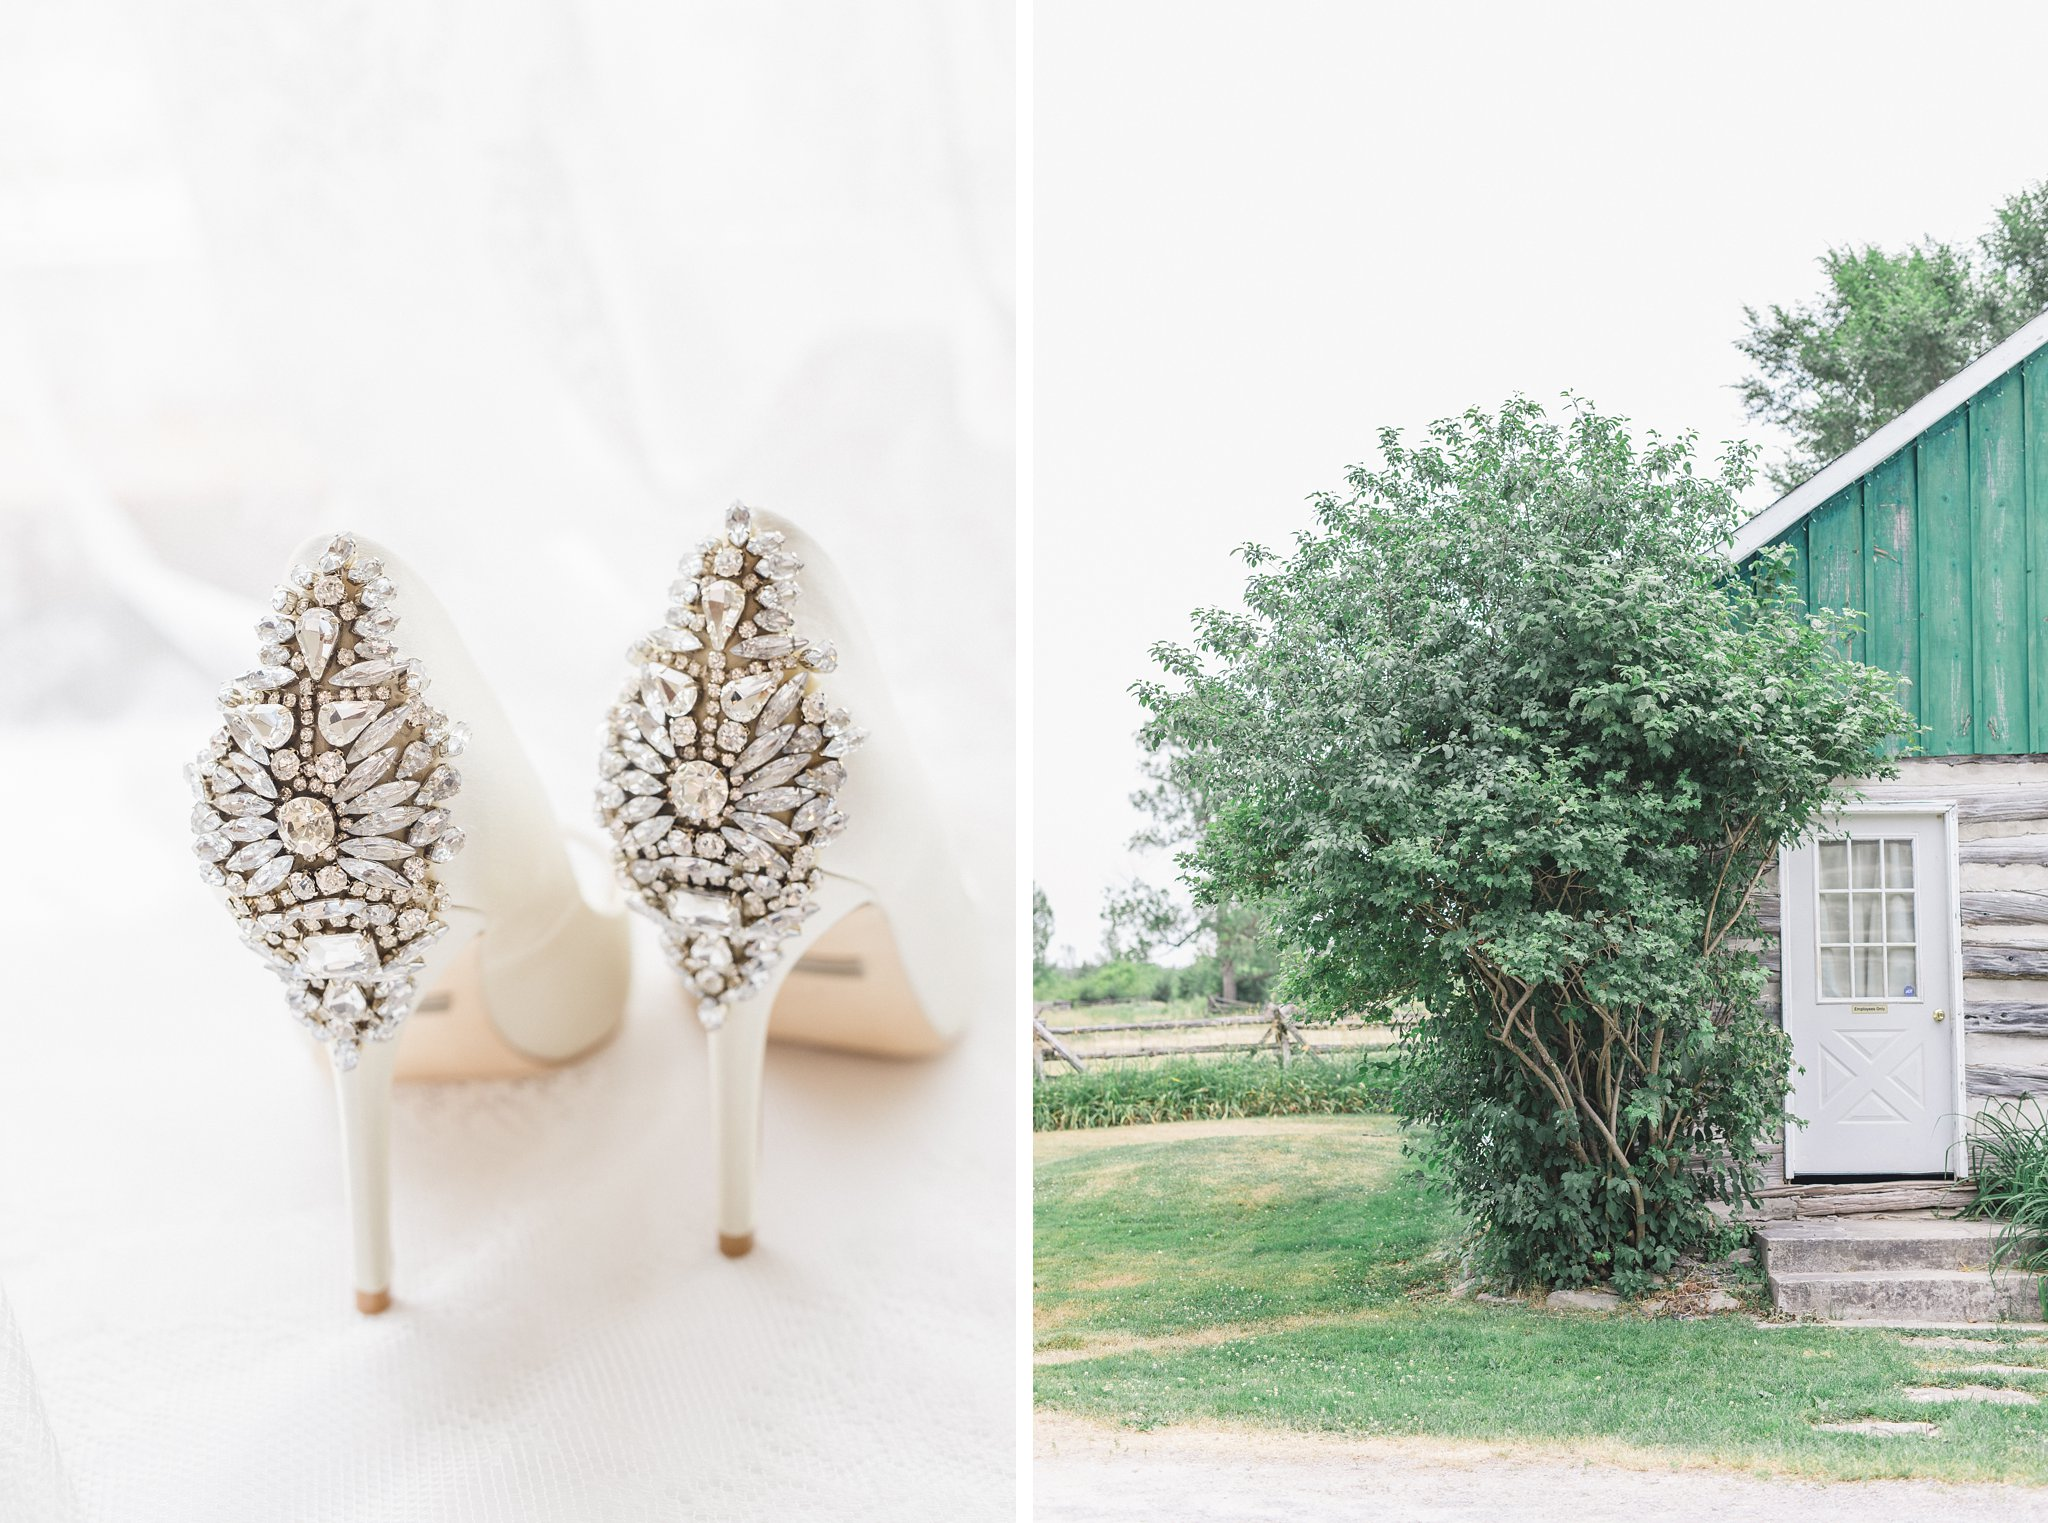 Badgley Mischka bridal heels married at Stonefields, Amy Pinder Photography